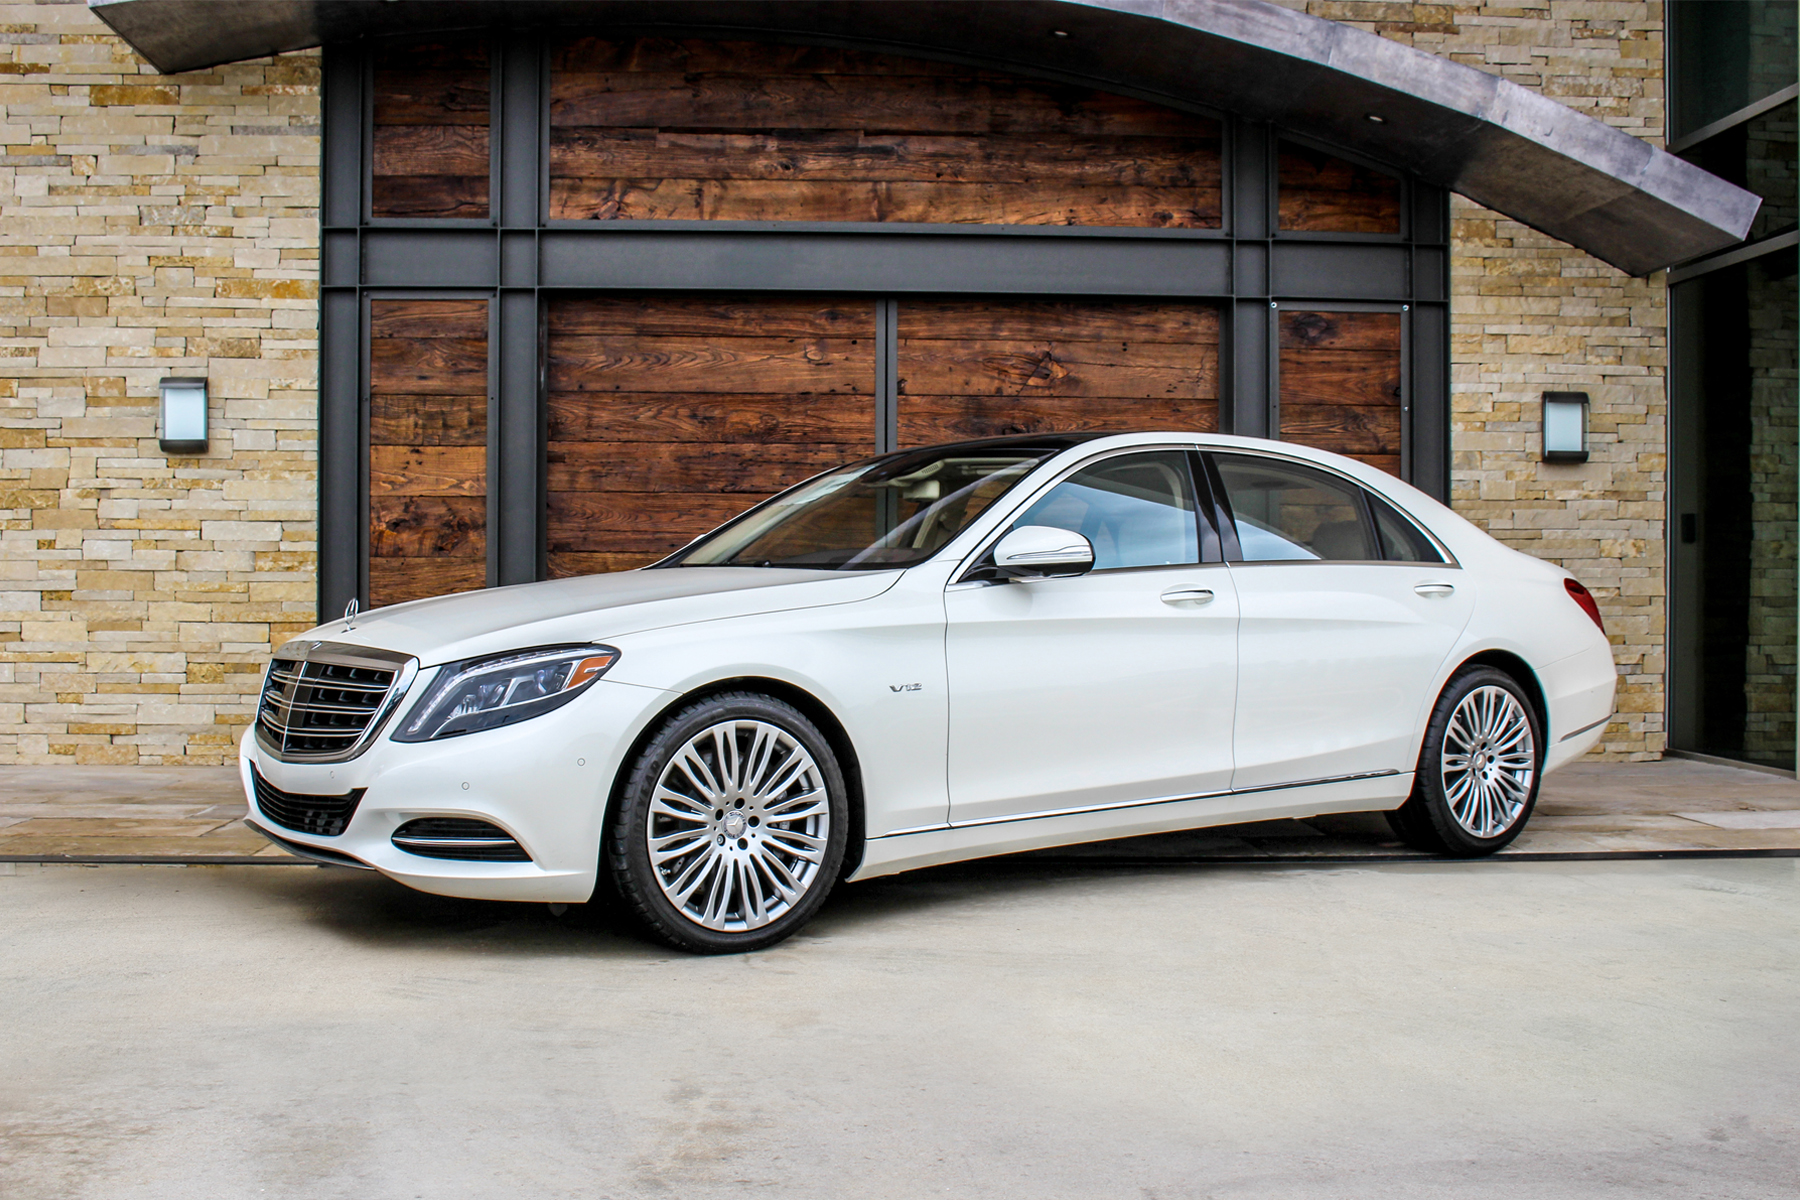 Awesome galleries of mercedes benz sugar land inventory for Mercedes benz of naples inventory